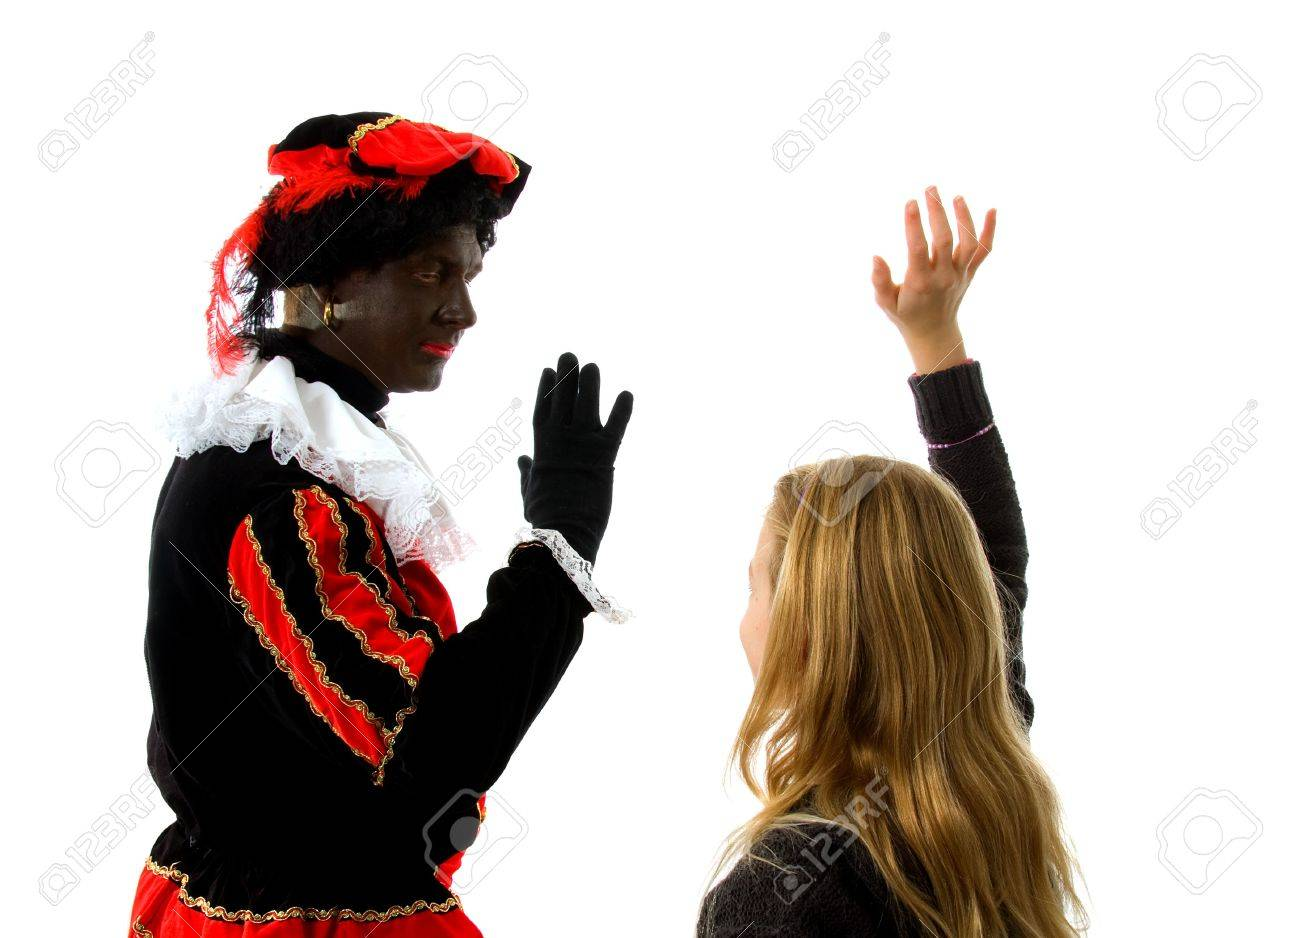 Blonde girl waves goodbye to Zwarte piet ( black pete) typical Dutch character part of a traditional event celebrating the birthday of  Sinterklaas in december over white background Stock Photo - 6037995